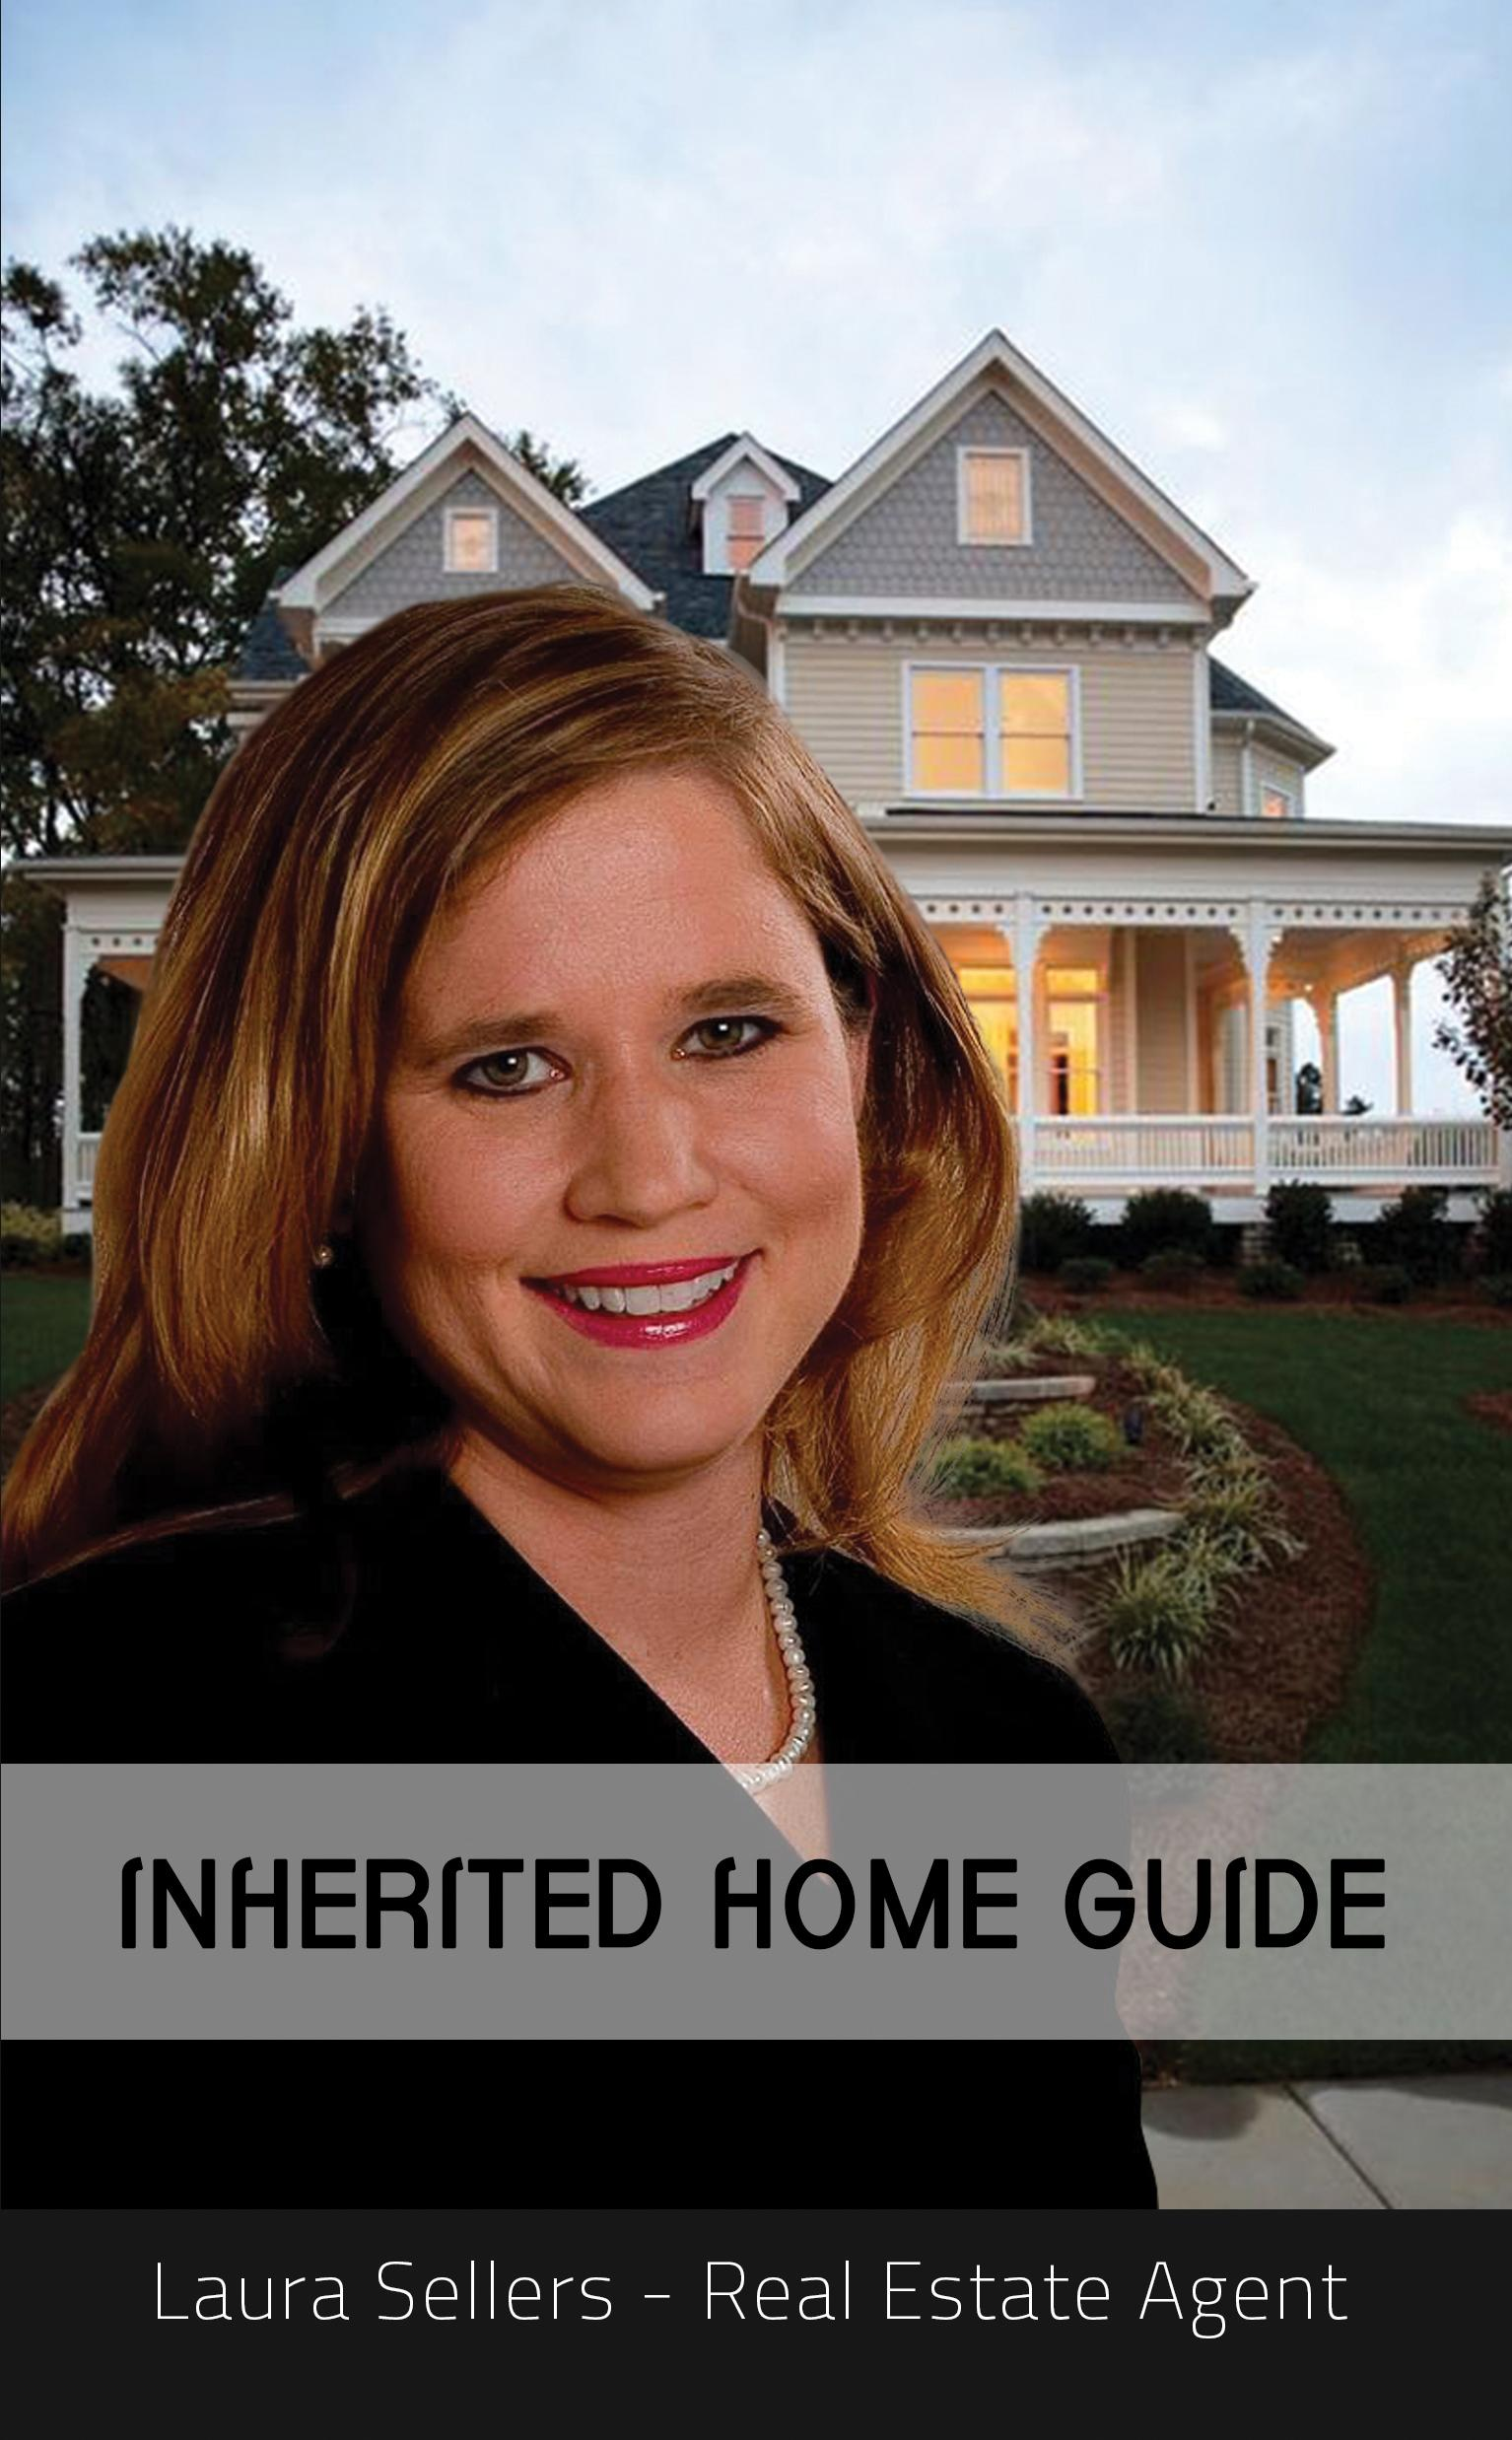 inherited-home-guide